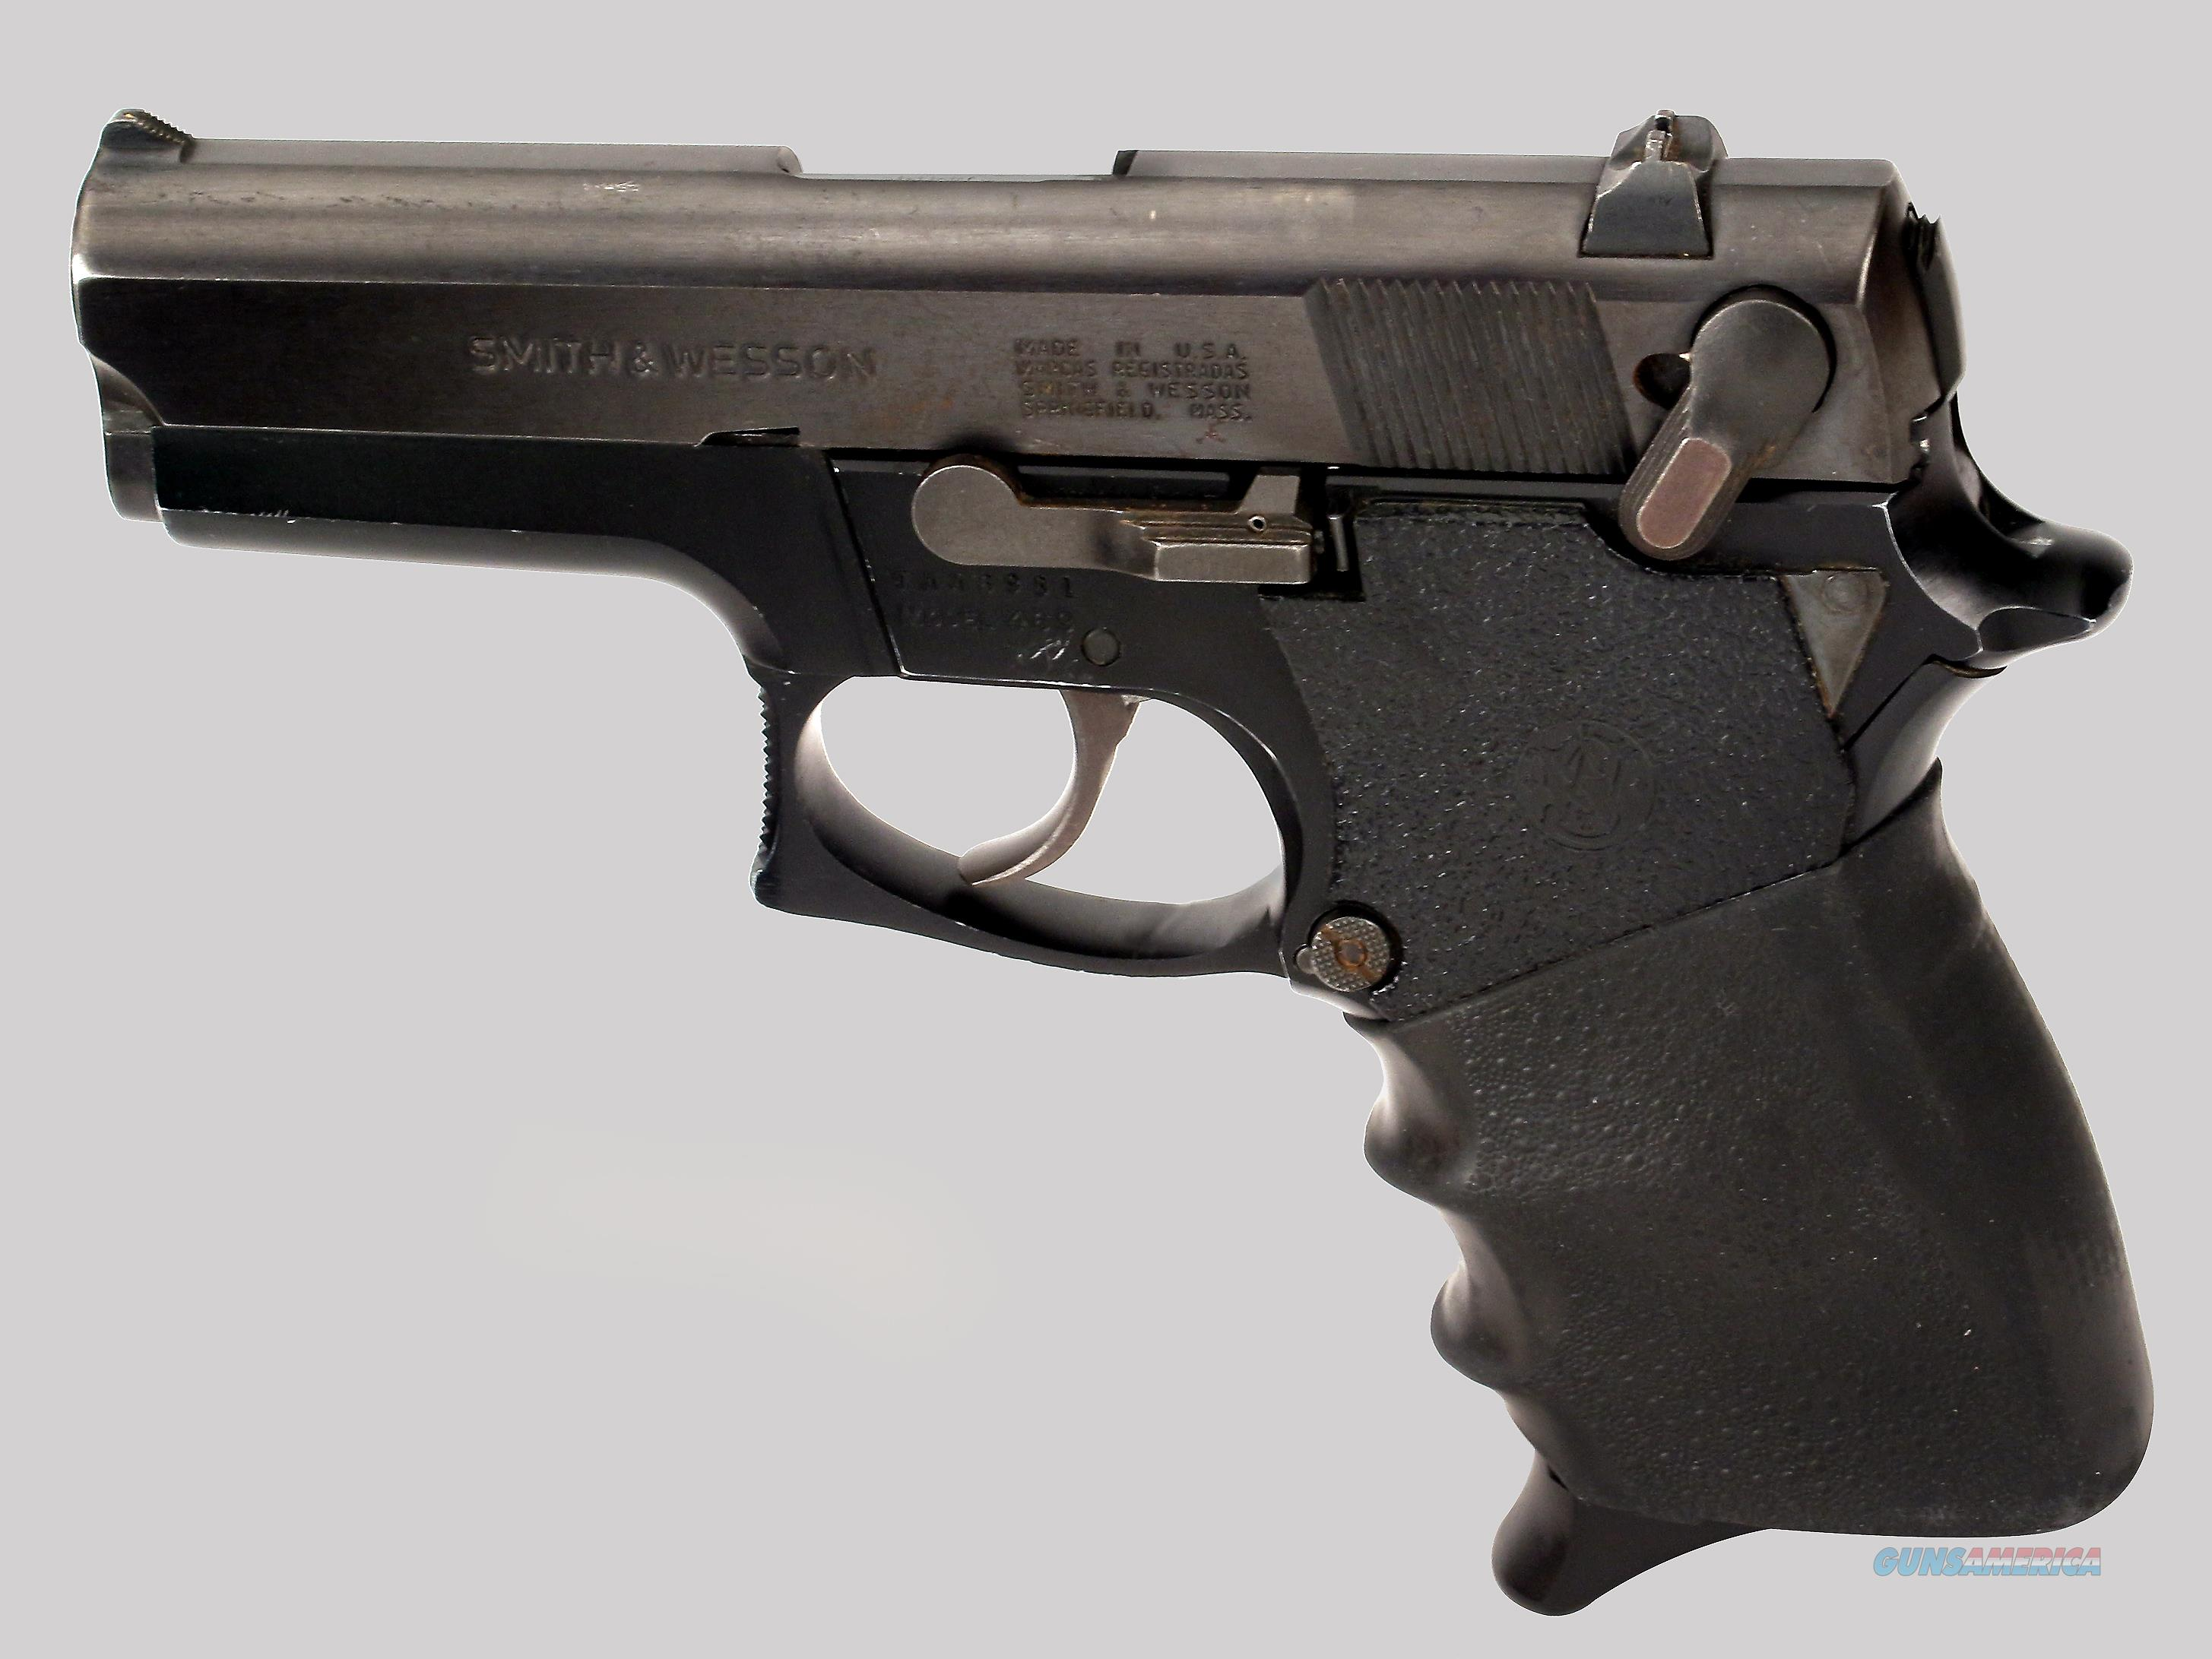 Smith & Wesson 9mm Pistol Model 469  Guns > Pistols > Smith & Wesson Pistols - Autos > Steel Frame